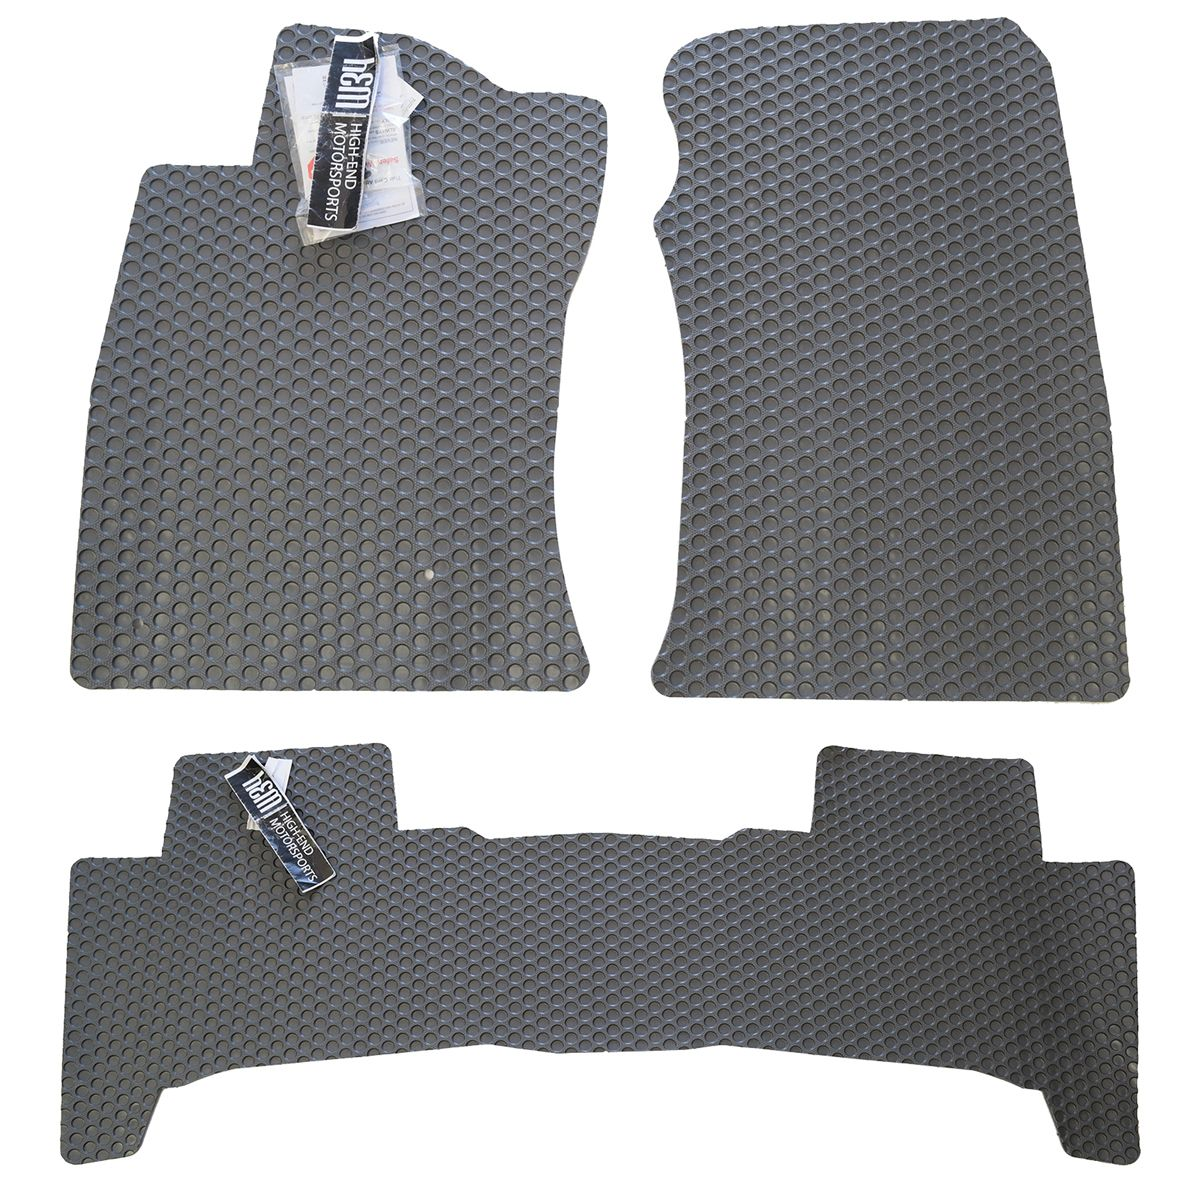 Acura ILX Custom All Weather Rubber Floor Mats